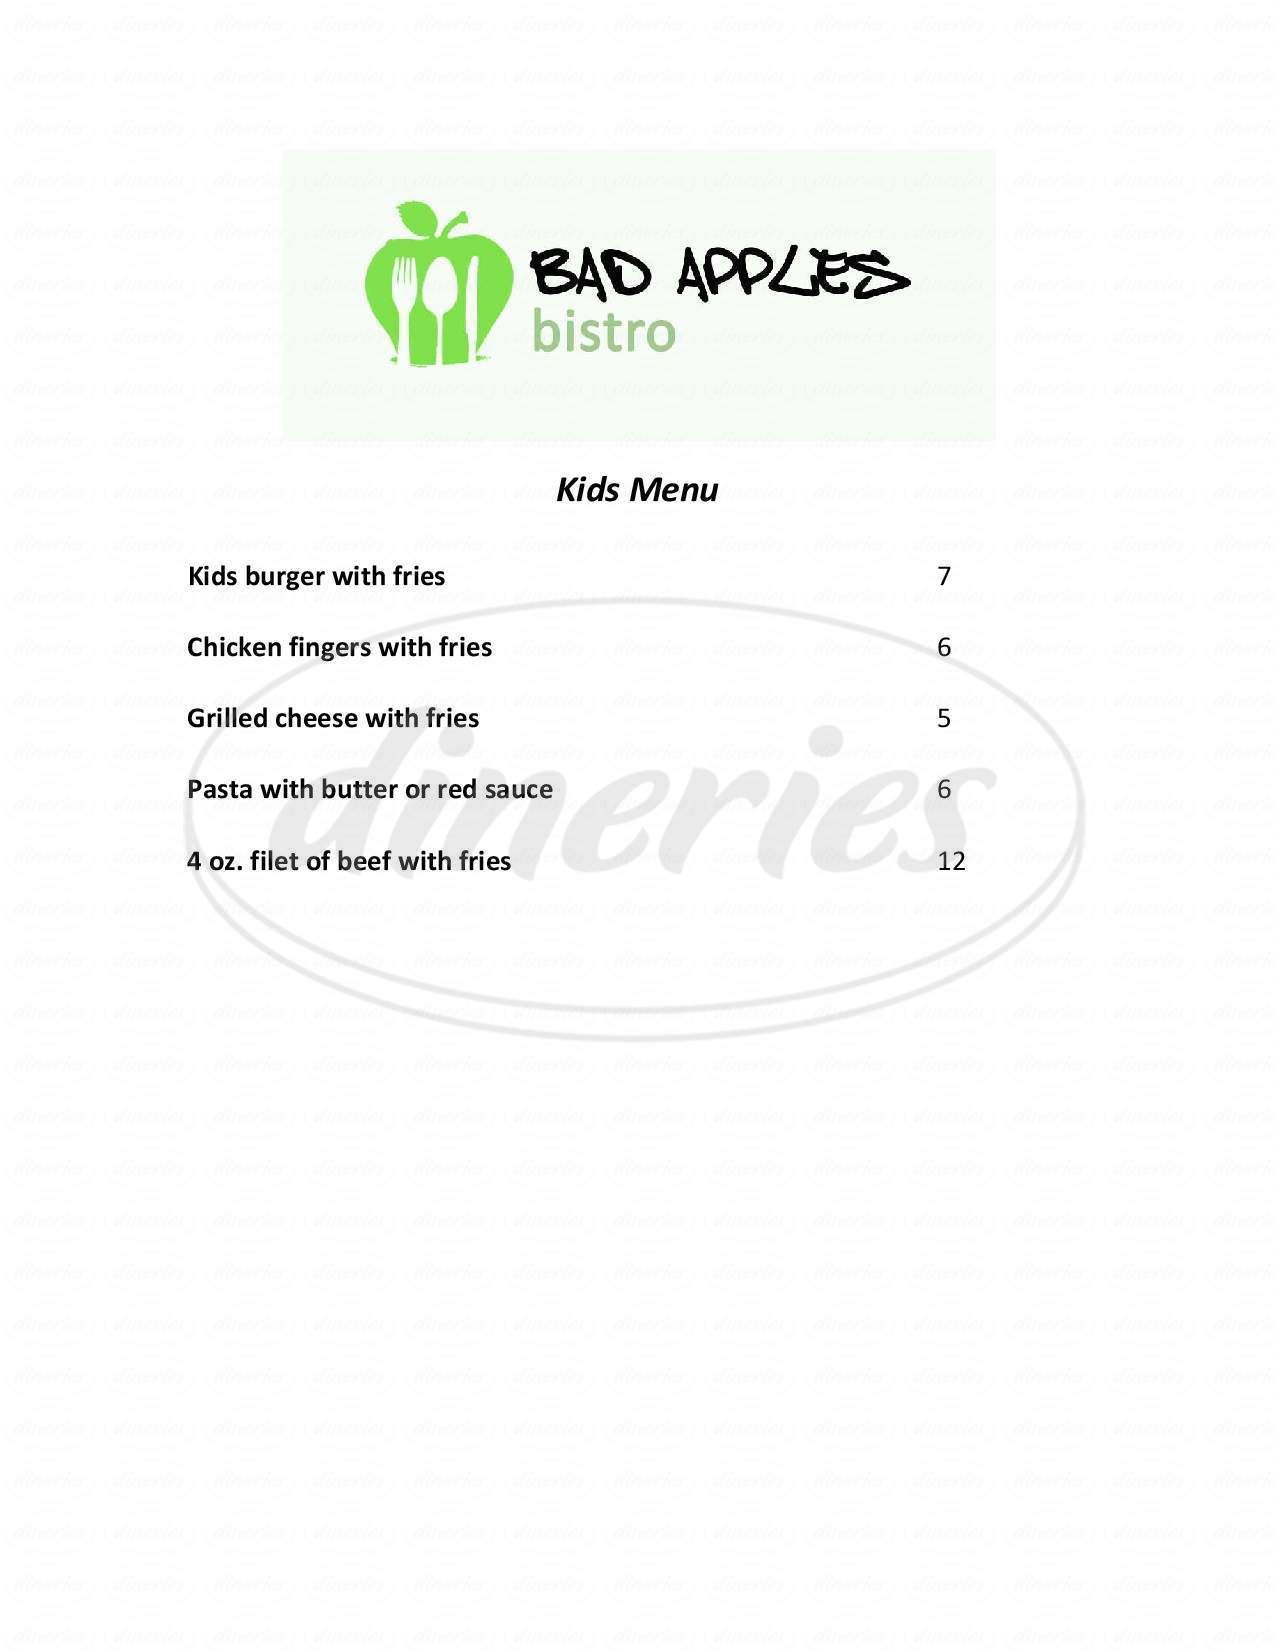 menu for Bad Apple's Bistro